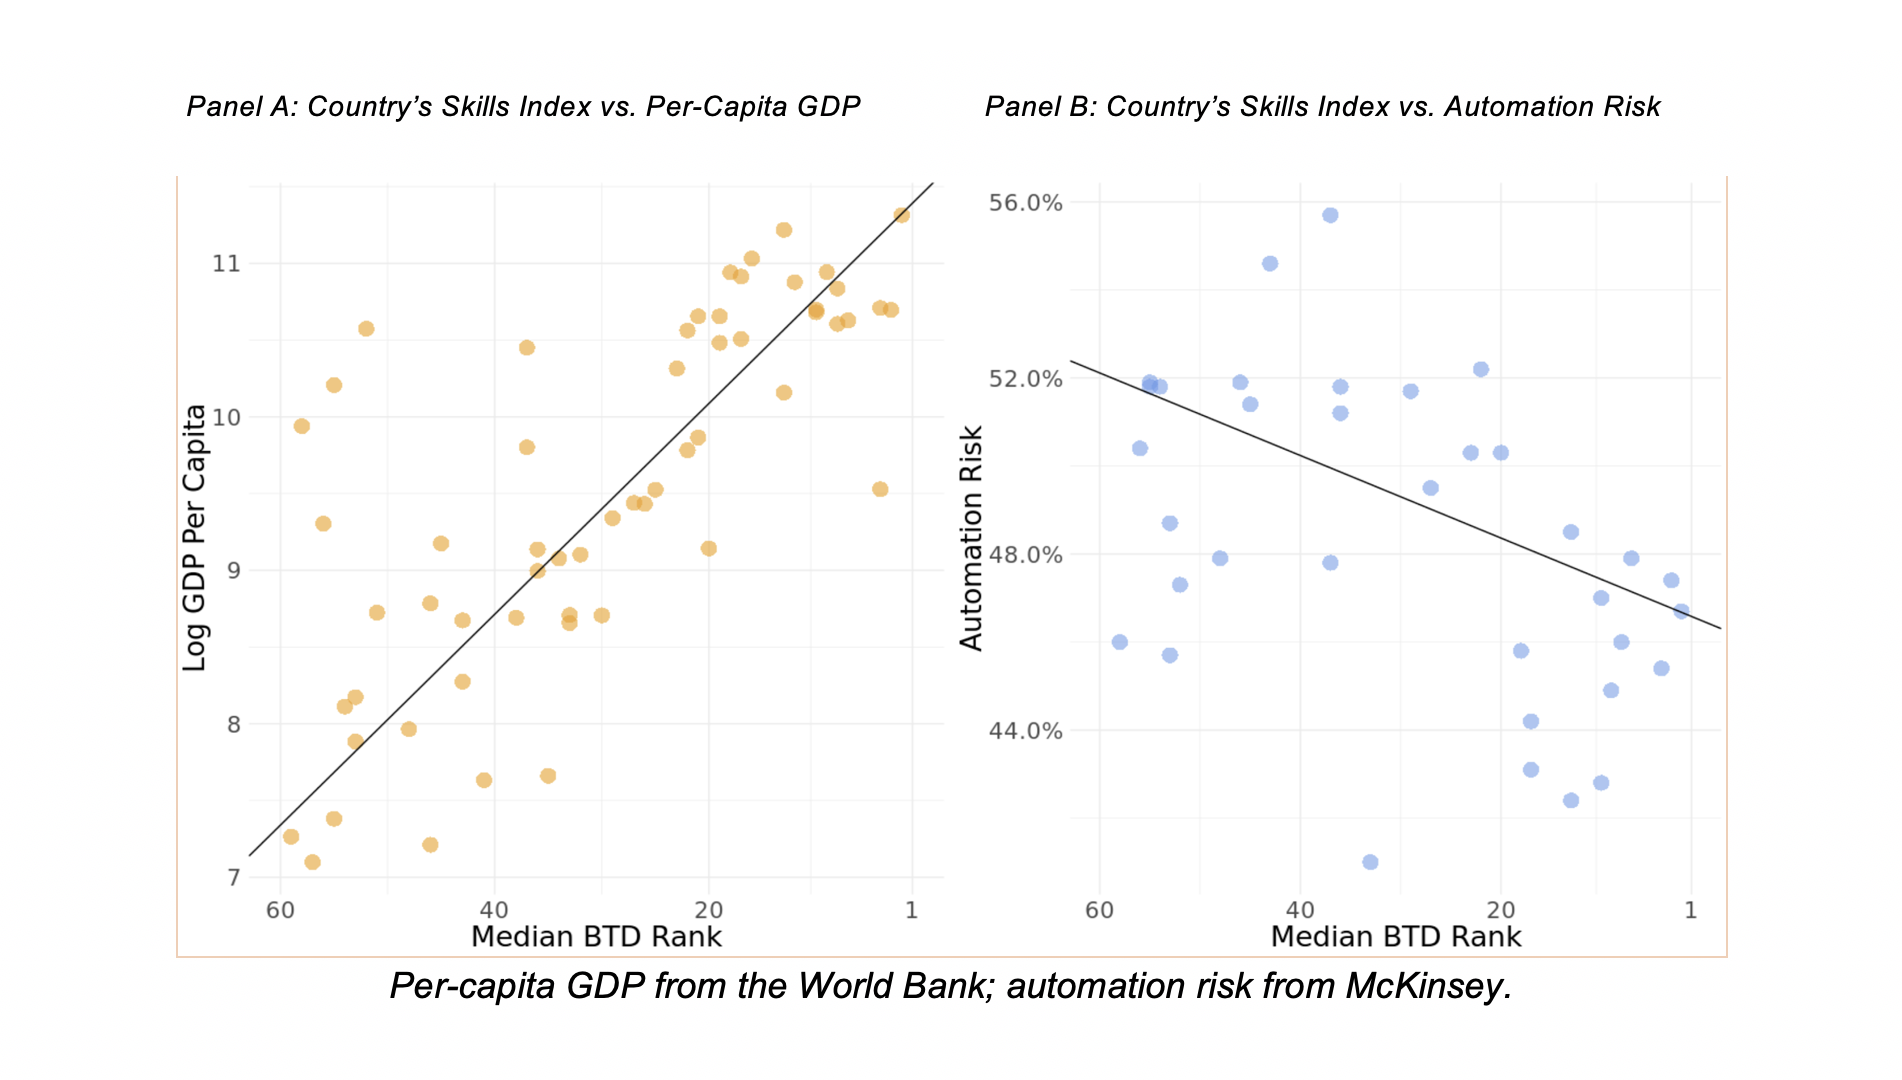 How does a country's skill index correlate with its GDP and automation risk?